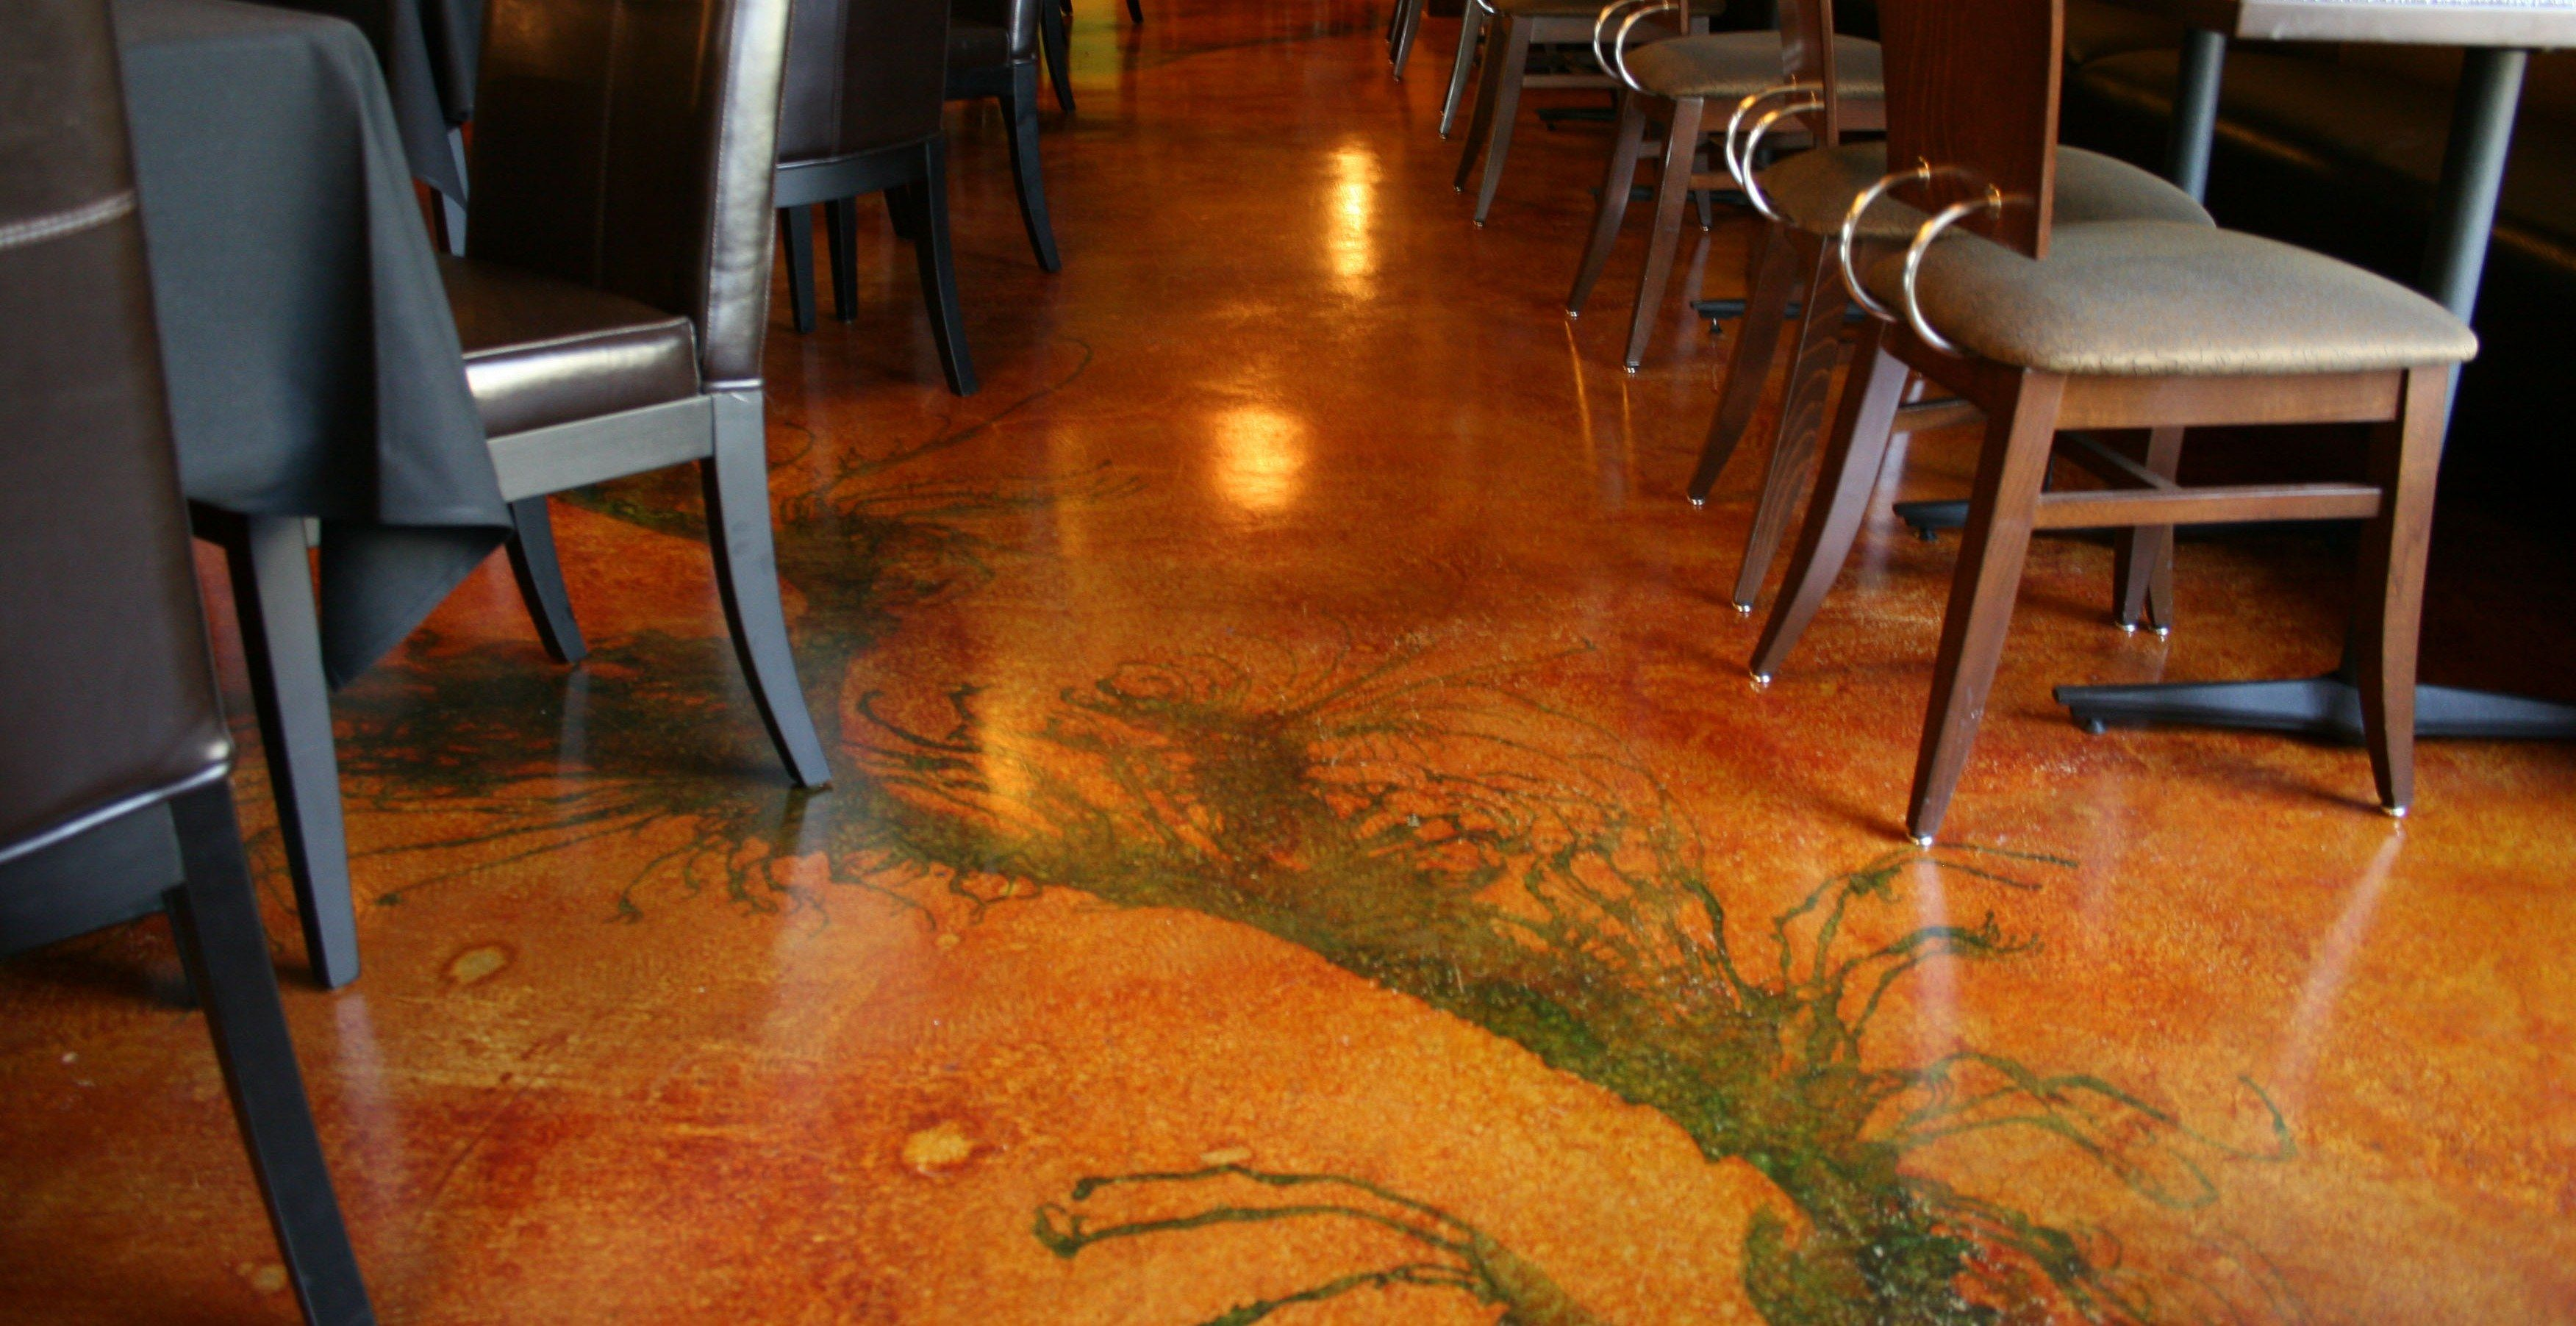 Staining Concrete Can Be A True Art Form Concrete Staining